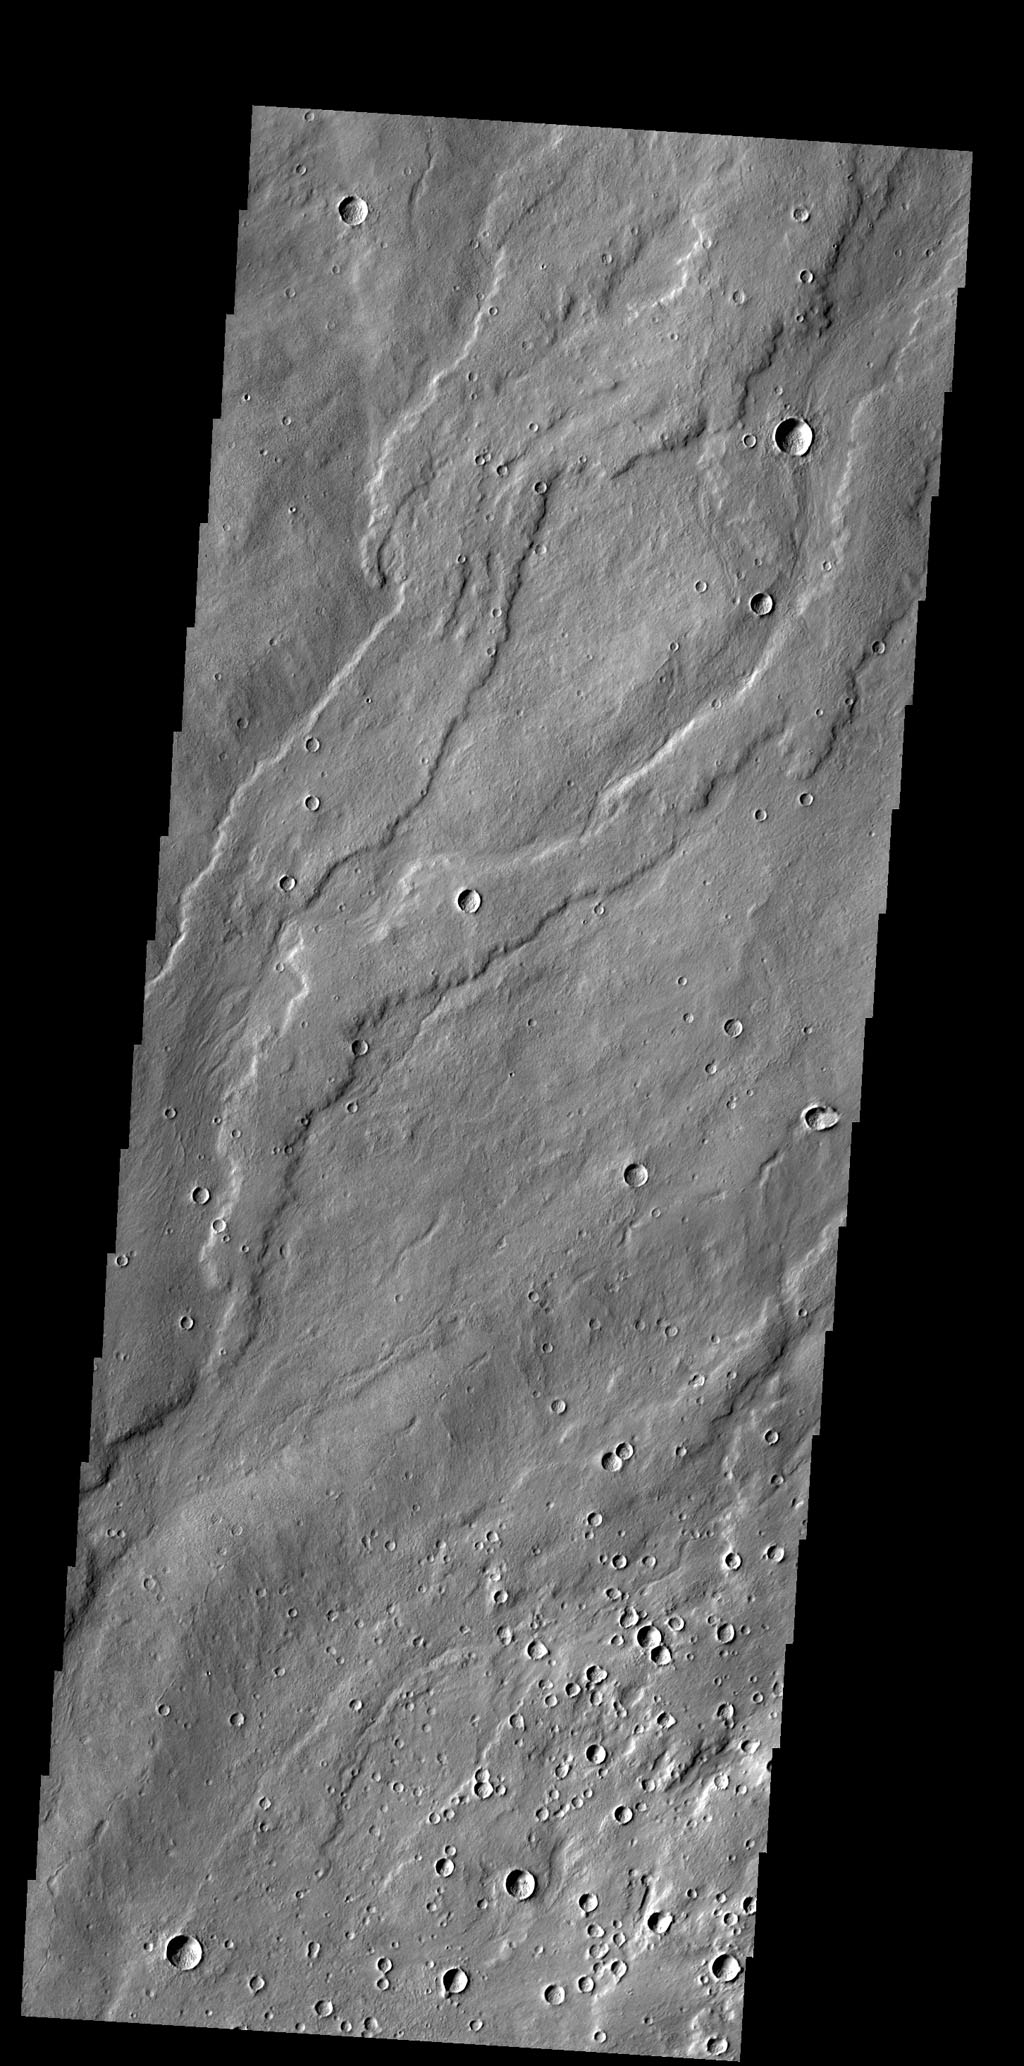 This image shows lava flows from Alba Mons as seen by NASA's 2001 Mars Odyssey spacecraft.